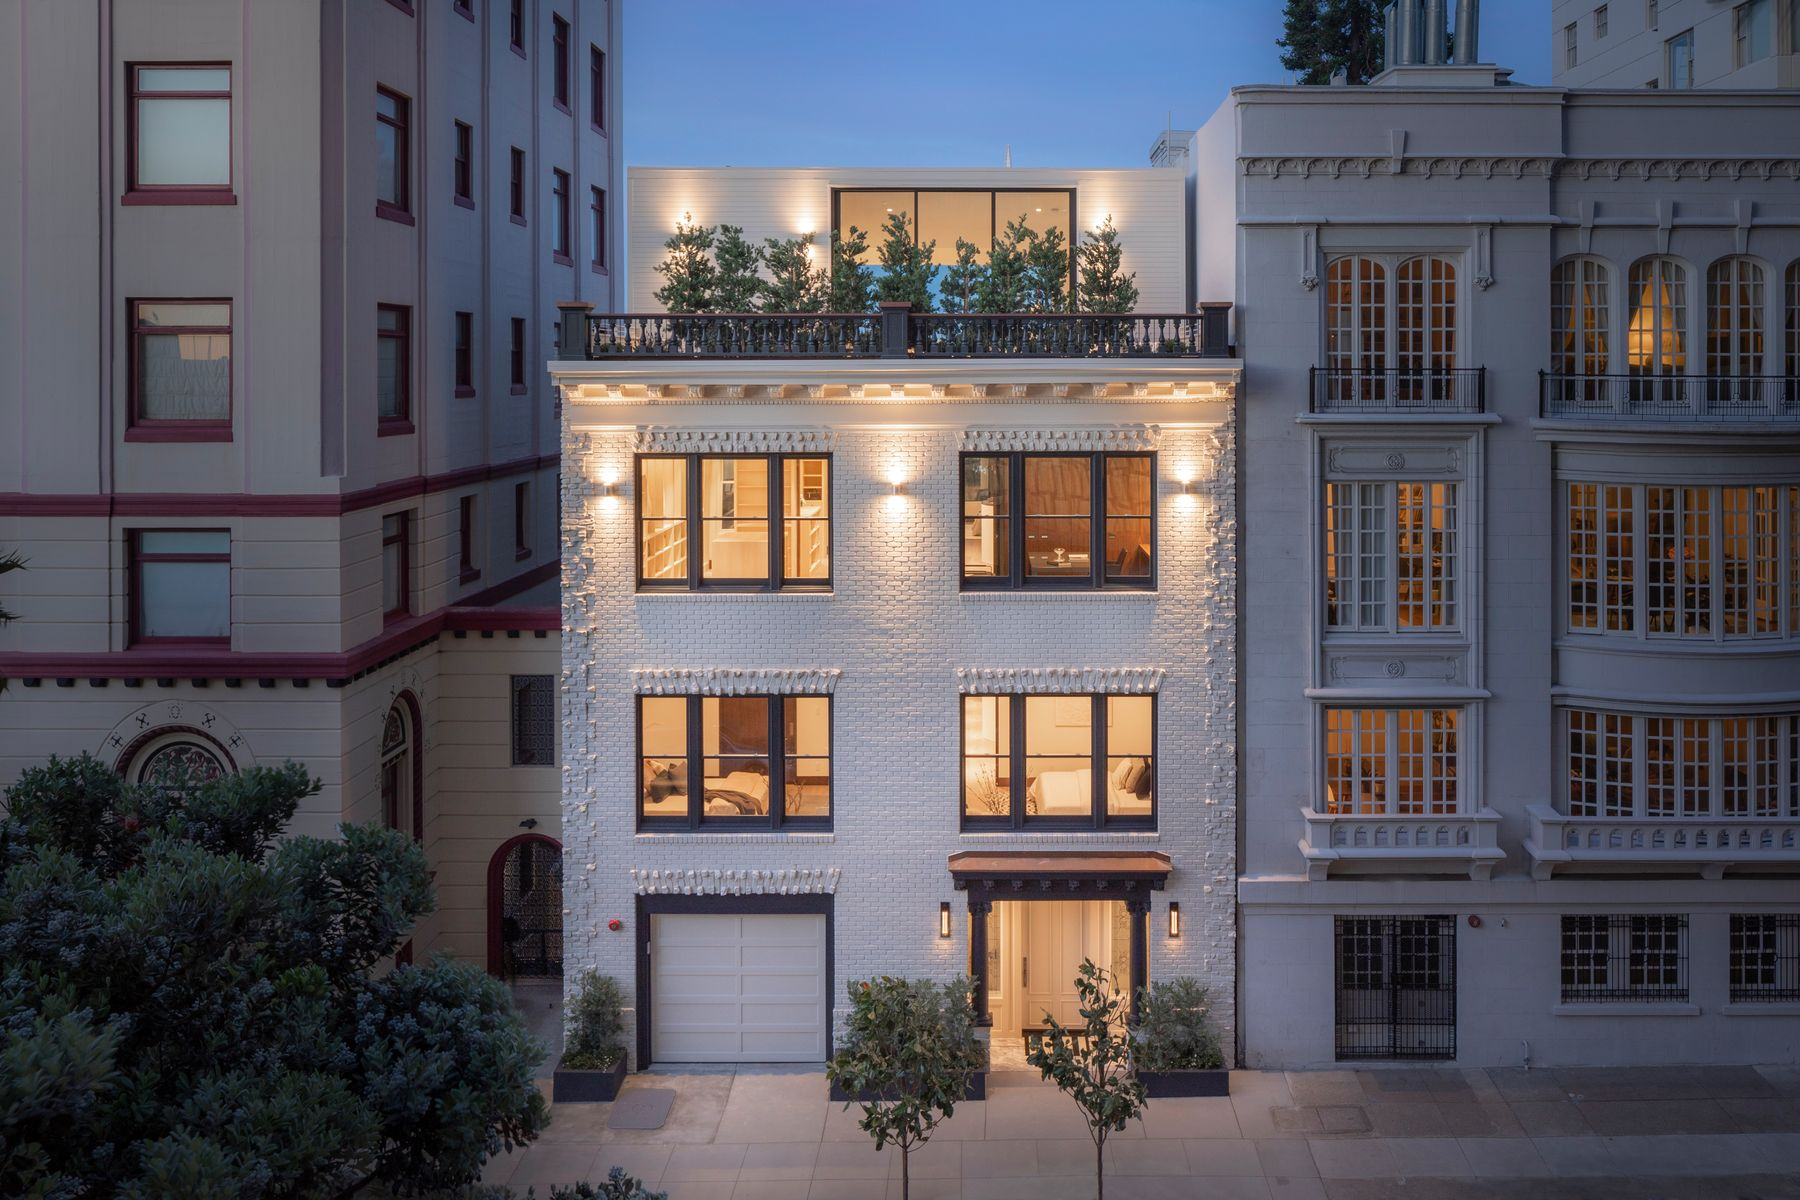 Single Family Homes for Active at Nob Hill's Crown Jewel 1350 Jones St San Francisco, California 94109 United States